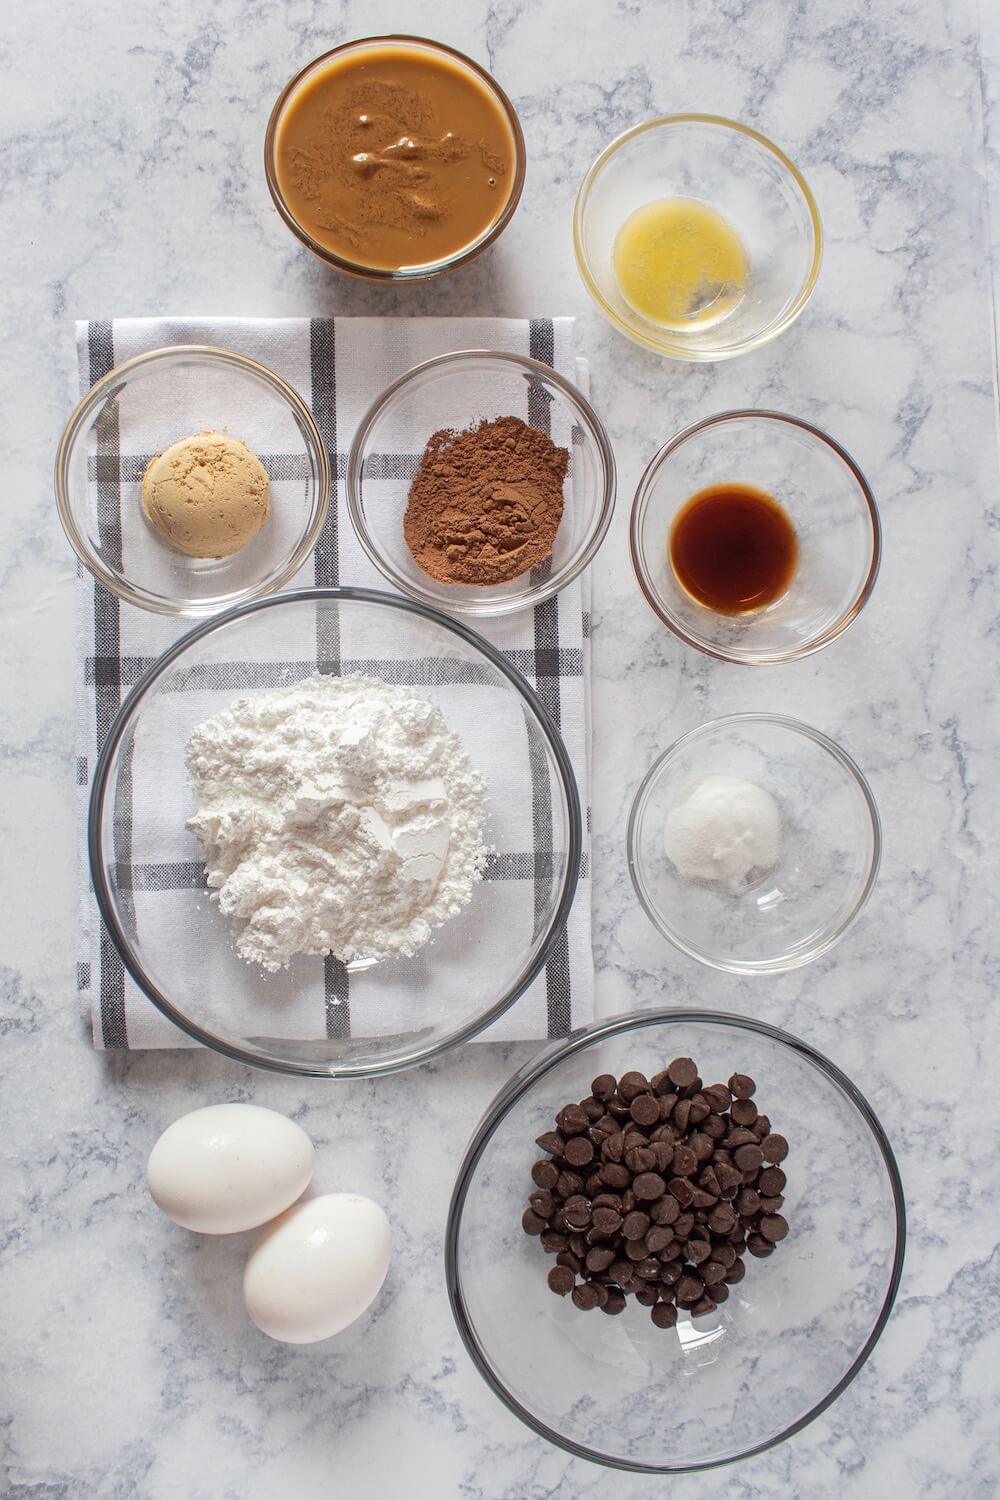 keto-double-choc-cookies-ingredients